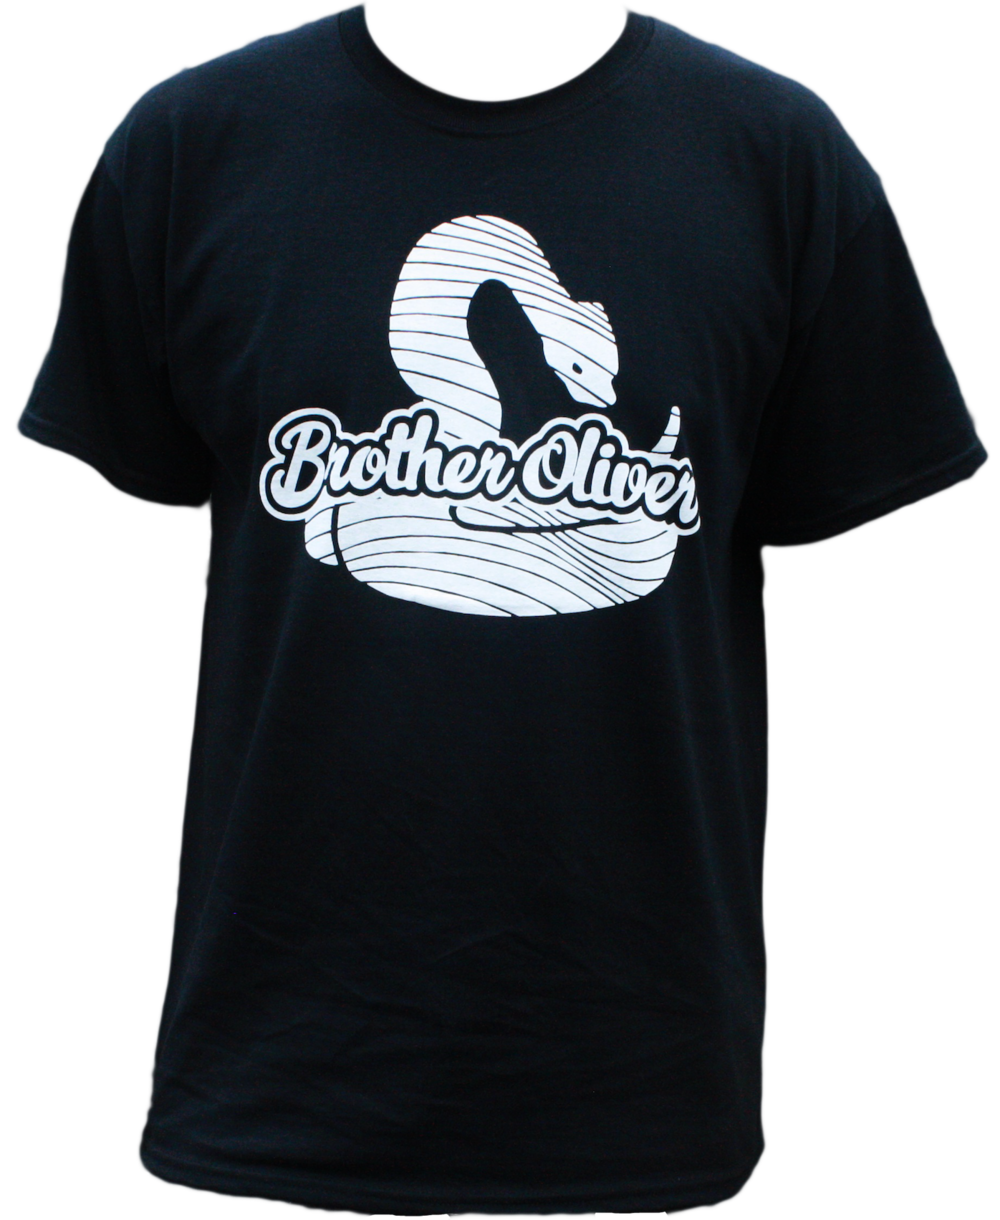 New Brother Oliver Tee's are in! T-shirt orders ship free